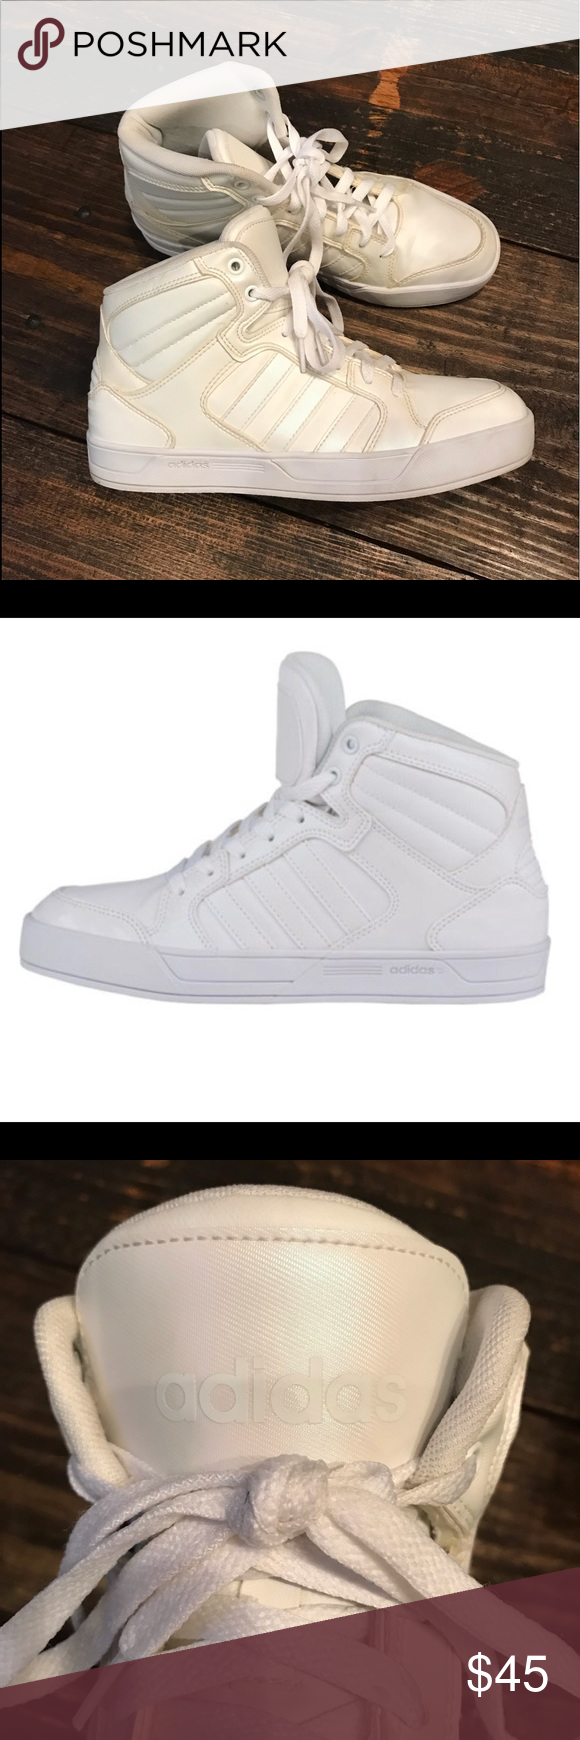 White Adidas High Tops In great used condition, well taken